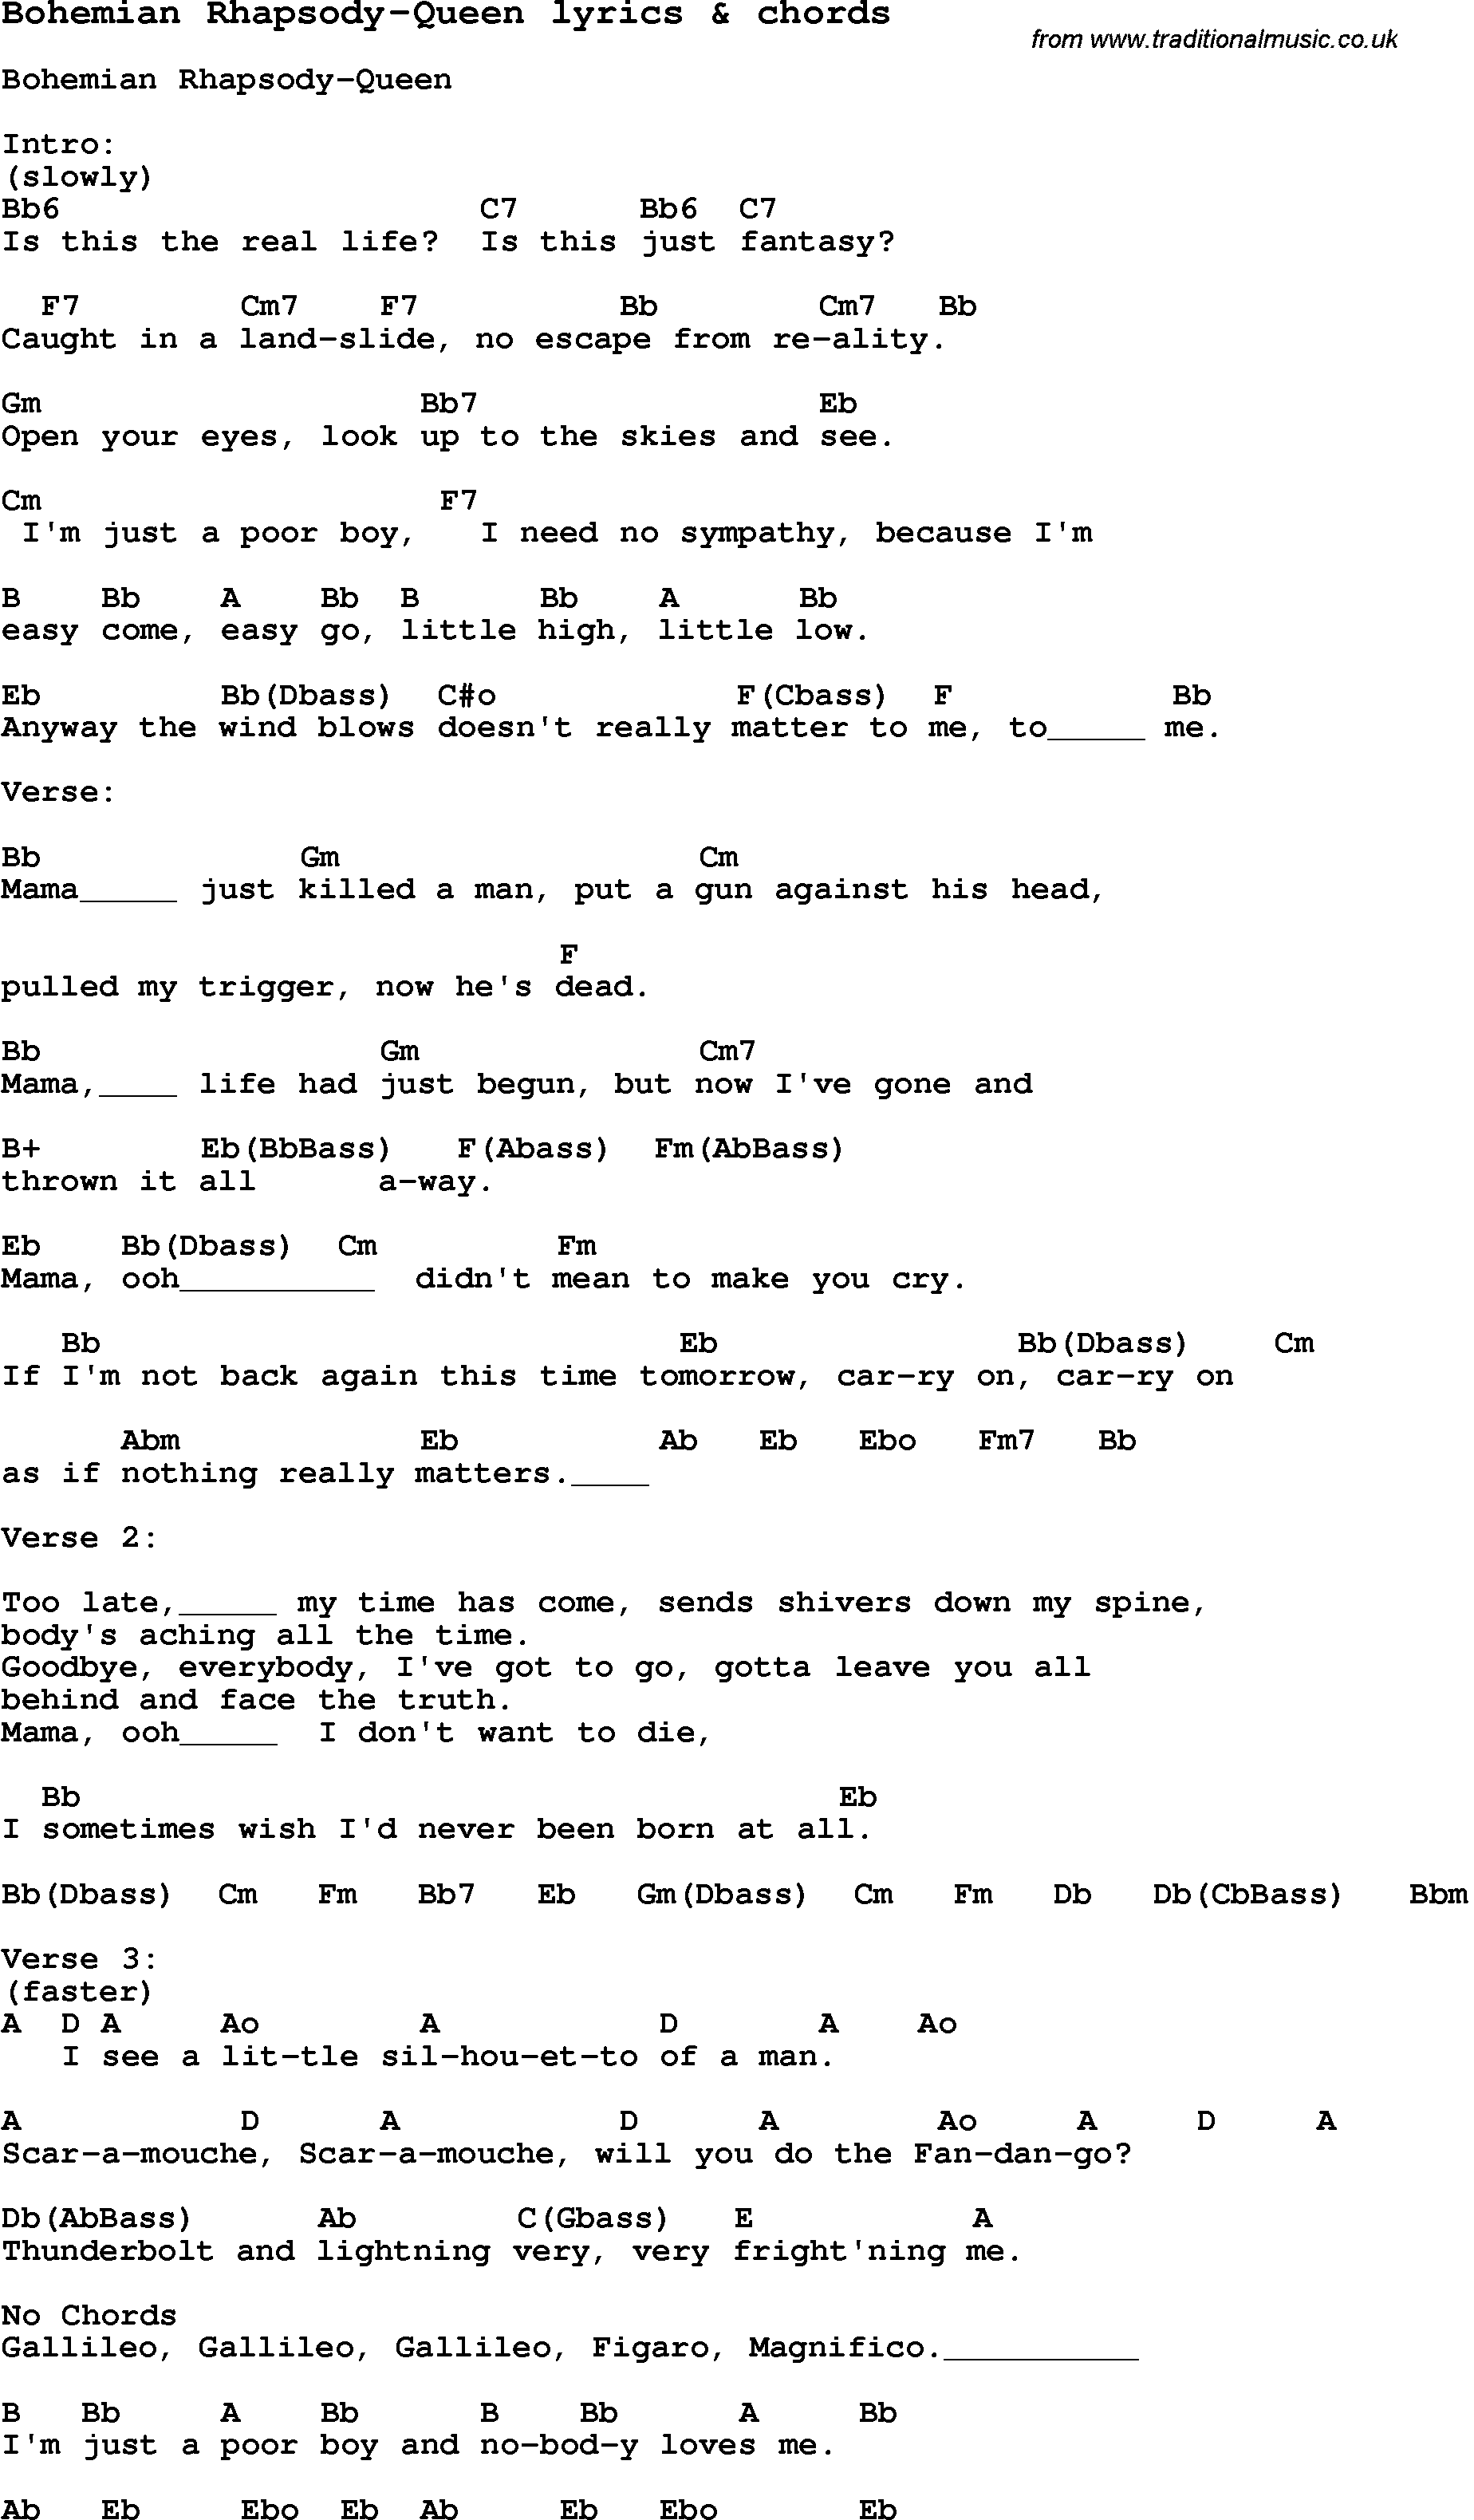 Love Song Lyrics for:Bohemian Rhapsody-Queen with chords.